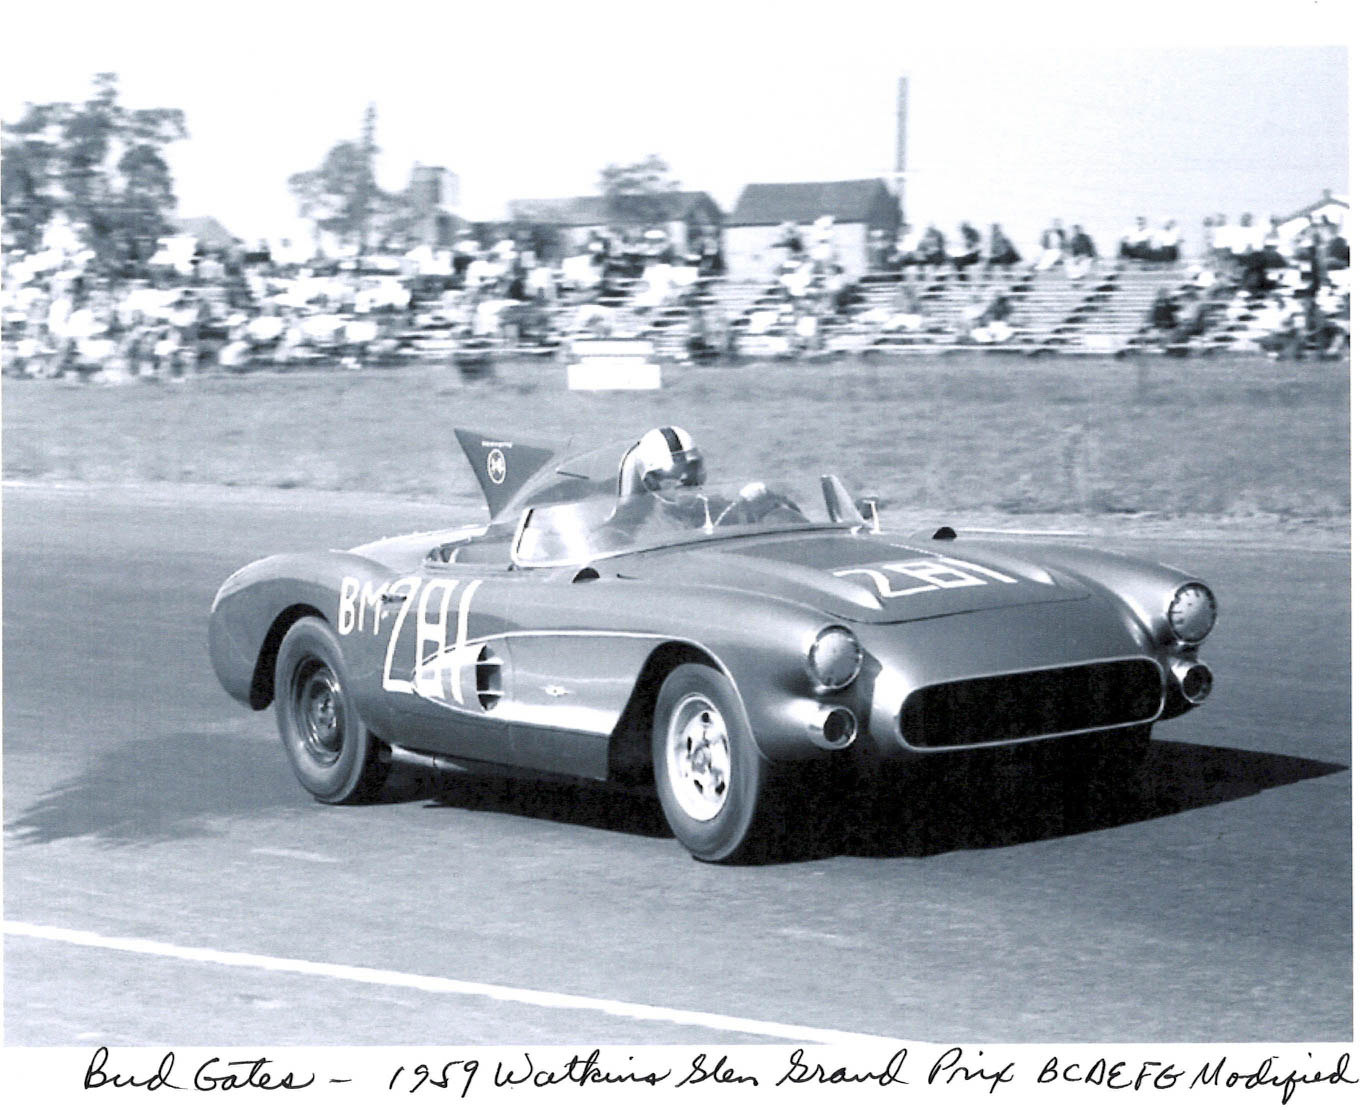 historic shot of the 1956 SR-2 racing